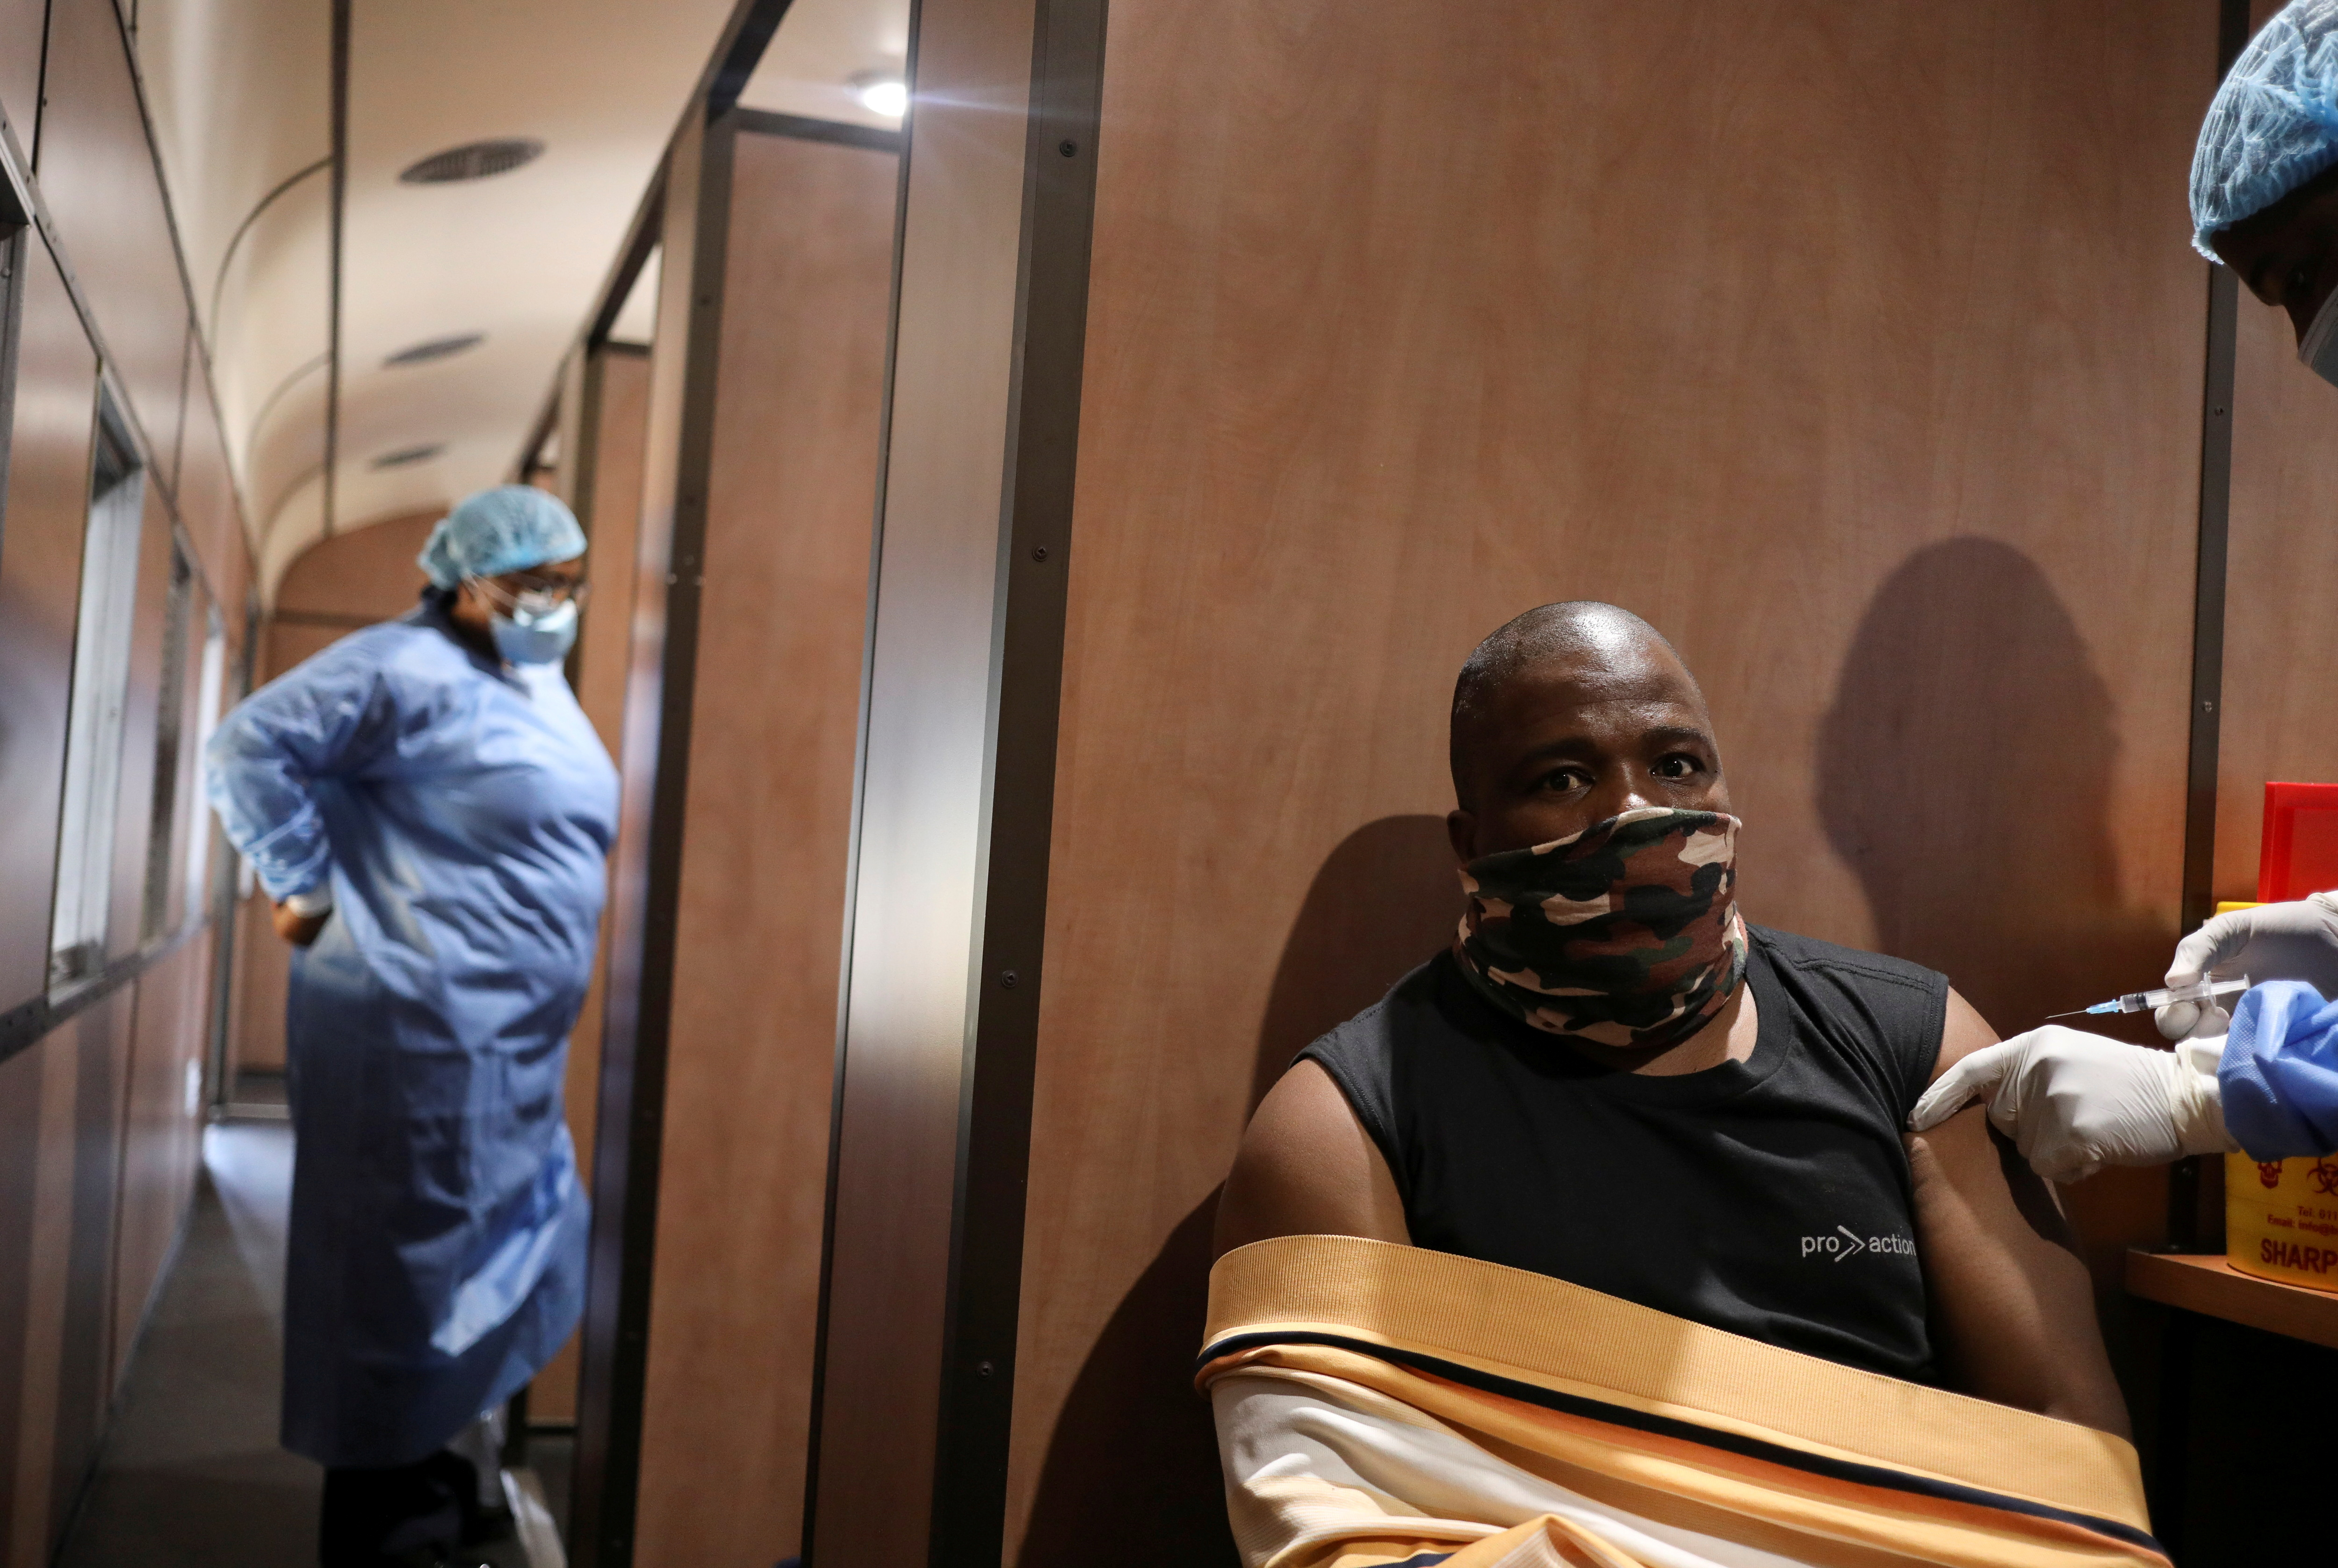 Dennis Malattji takes his coronavirus vaccine while a health worker looks on inside the Transvaco COVID-19 vaccine train, at the Springs train station on the East Rand, South Africa, August 27, 2021. REUTERS/Siphiwe Sibeko/File Photo